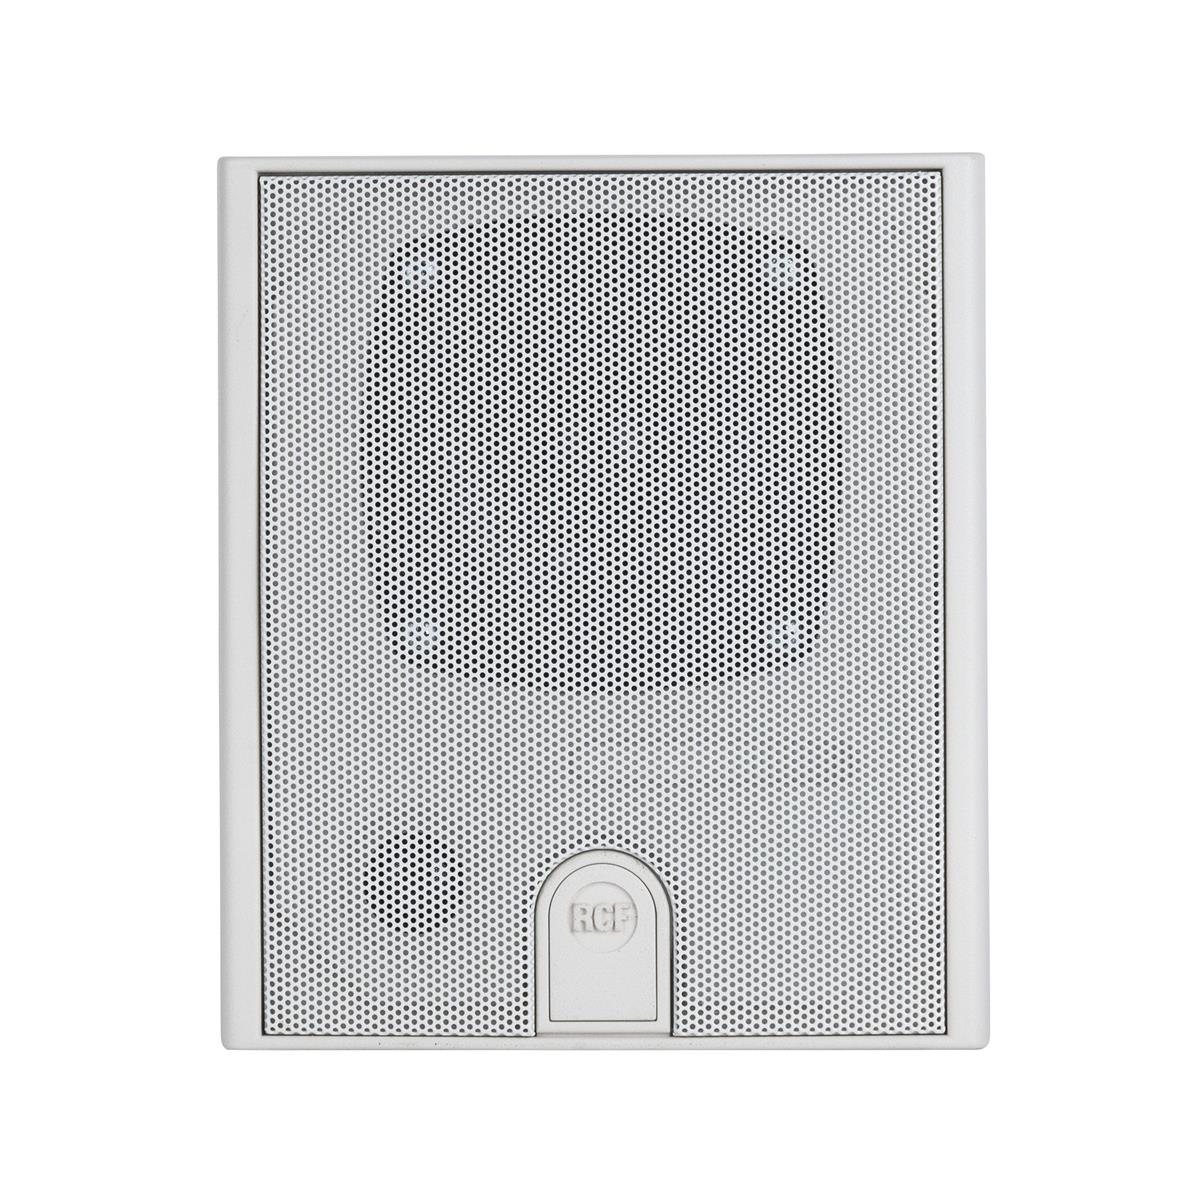 RCF DU 31 2 way in-wall mounting speaker 6W 100V, white